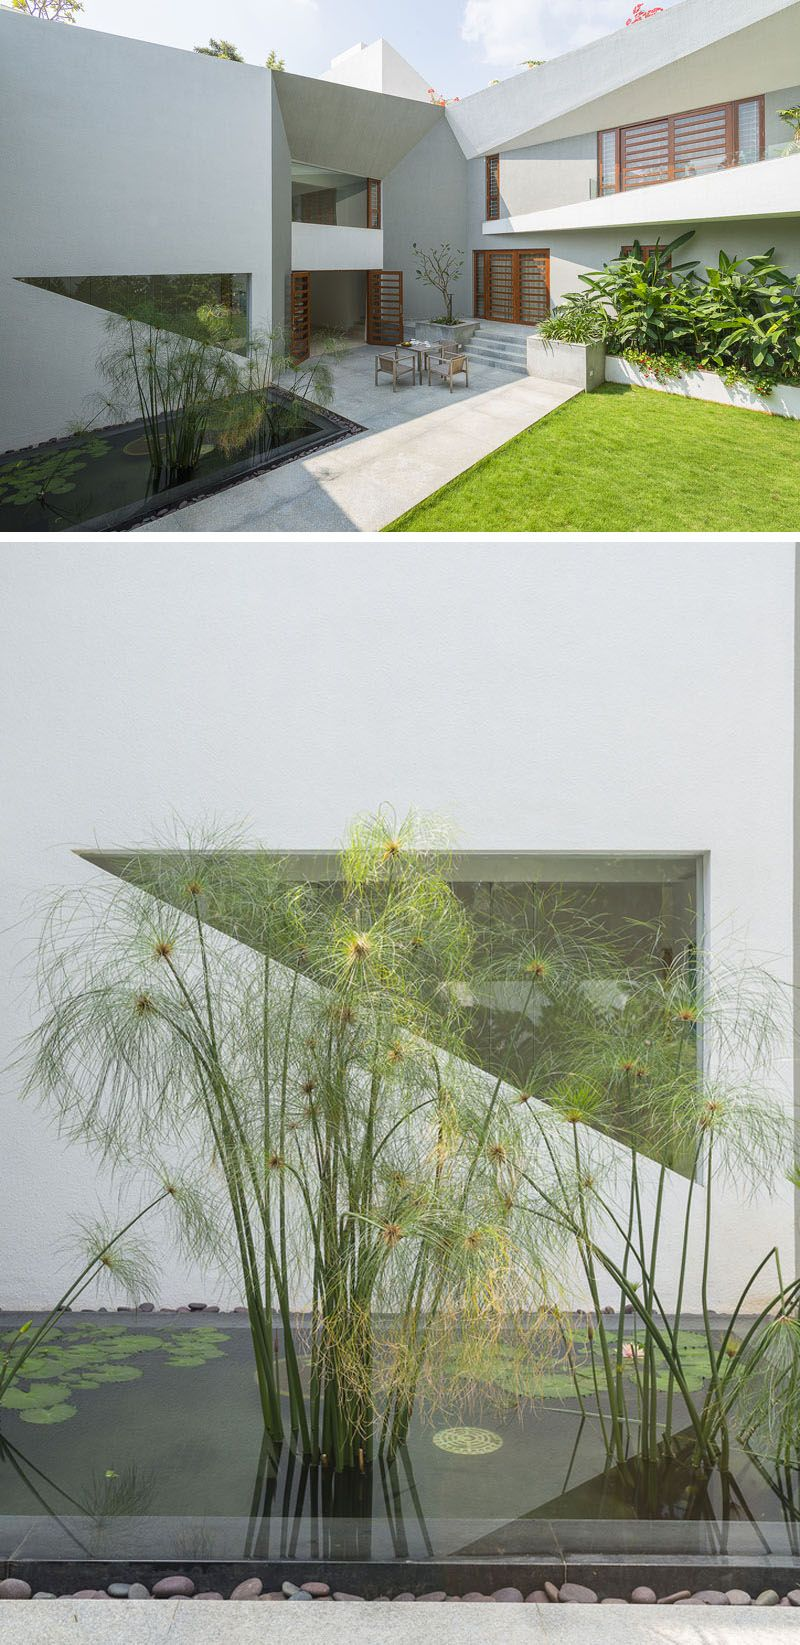 The Small Rectangular Pond In This Modern Backyard Breaks Up The Concrete  Patio And Creates A